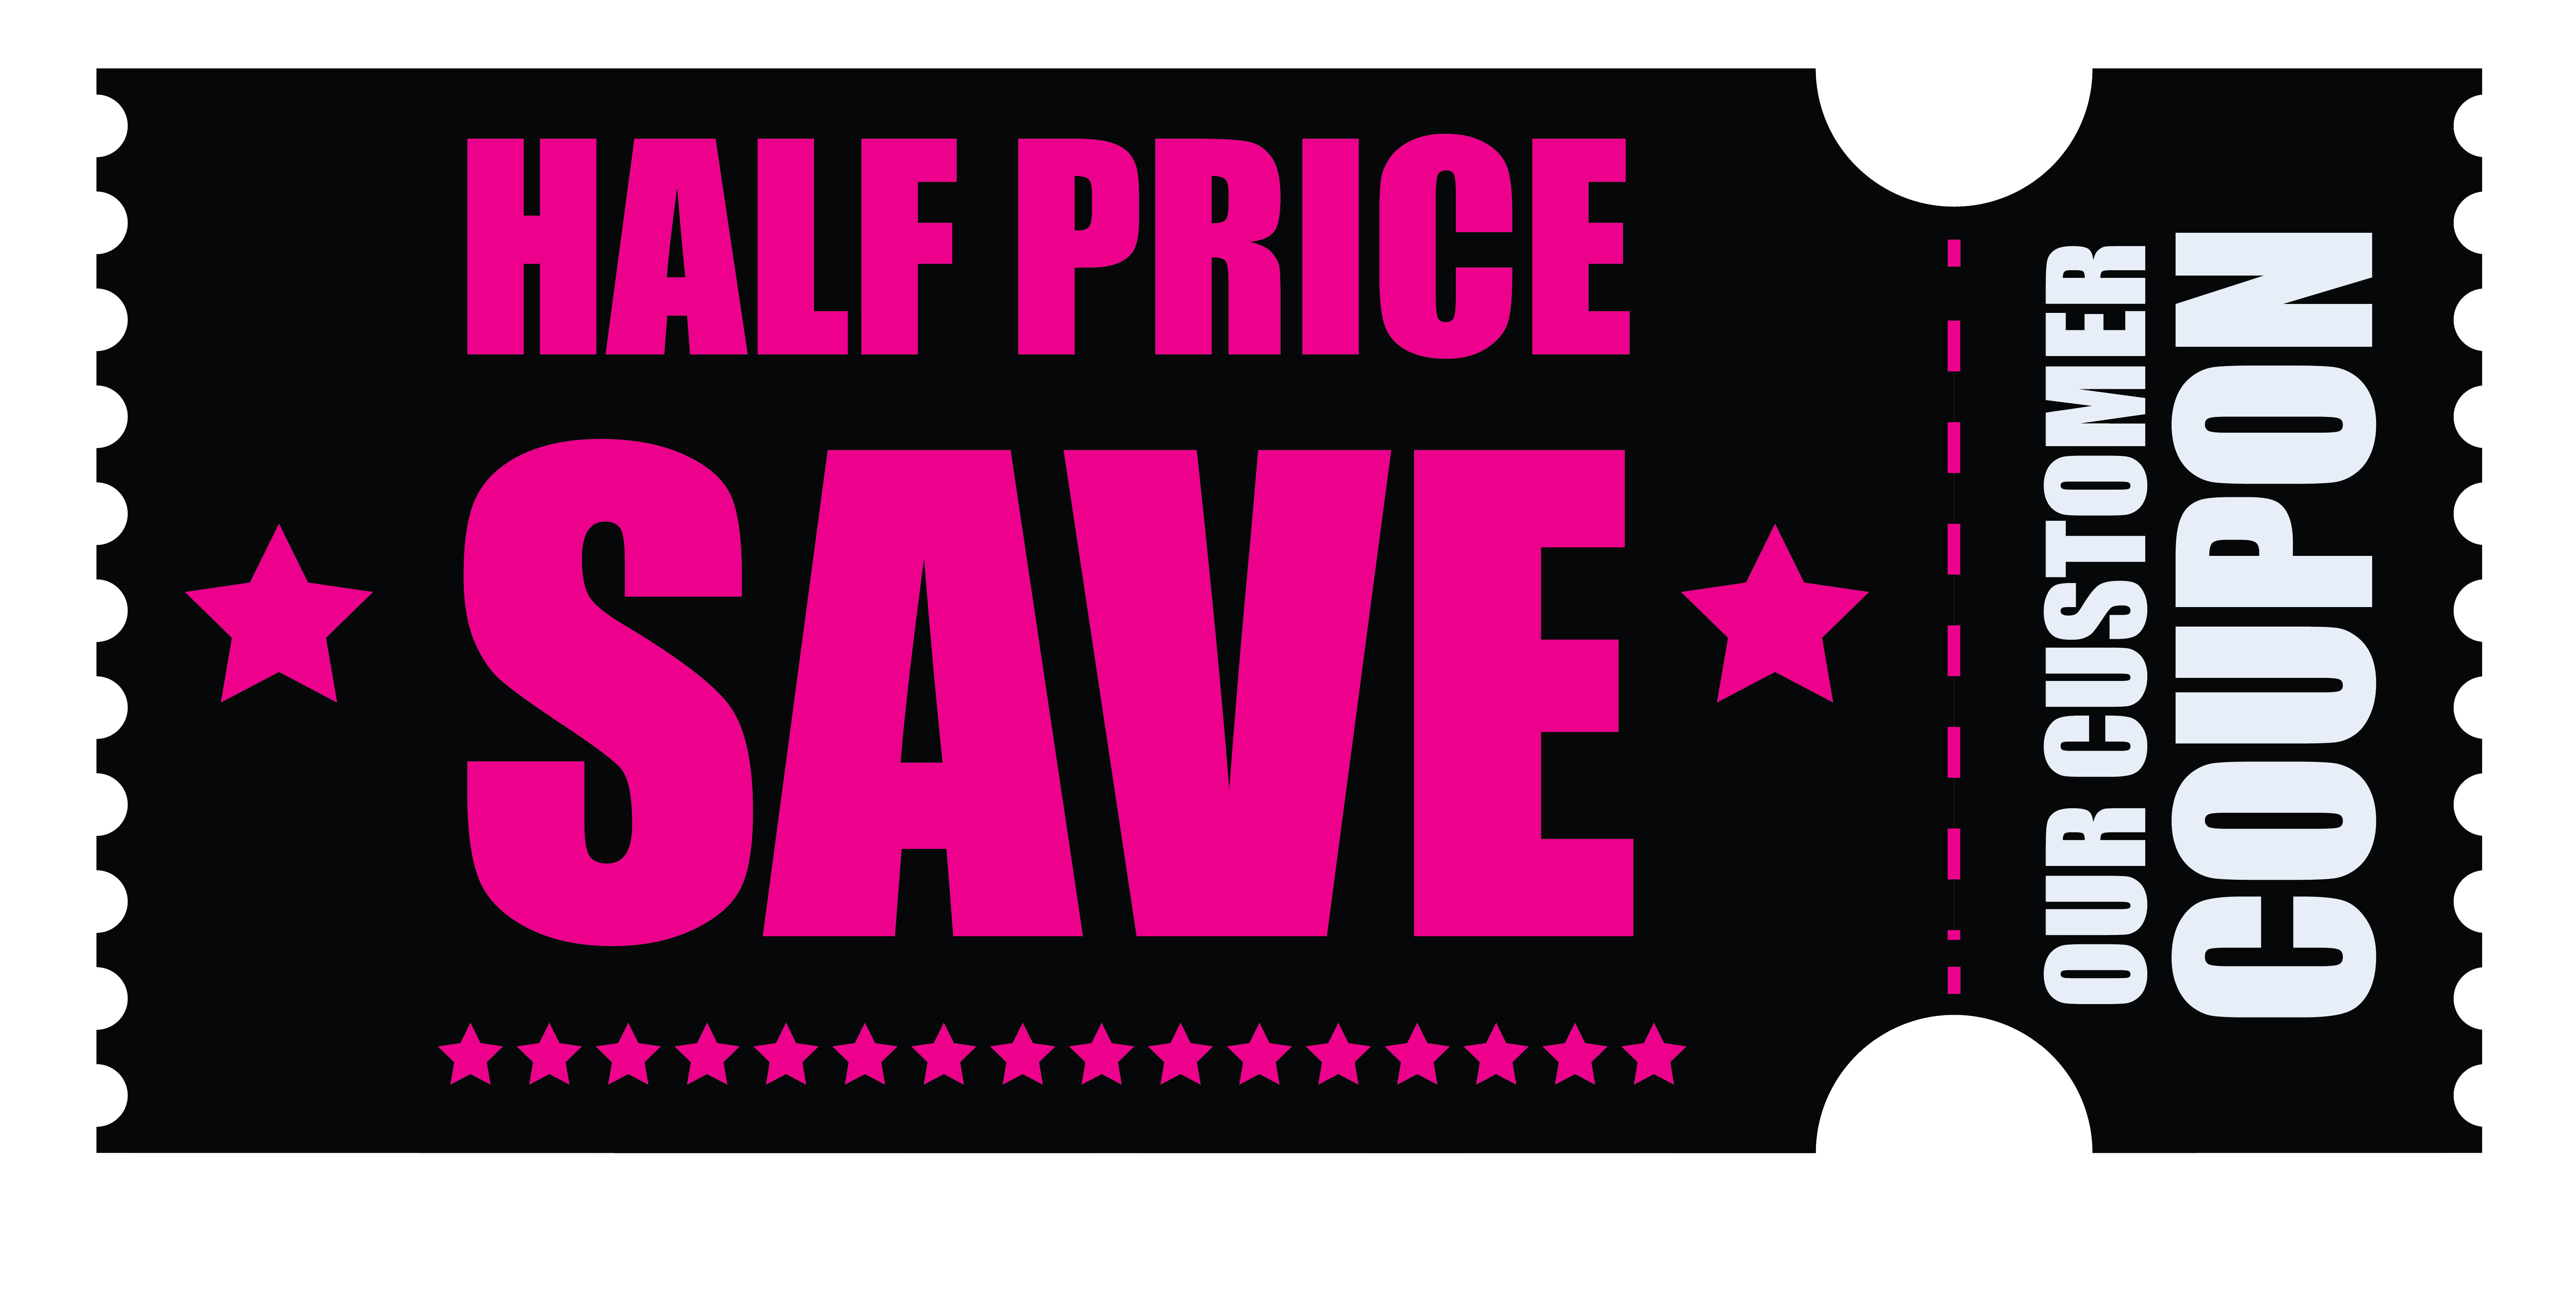 Black friday half price. Coupon clipart